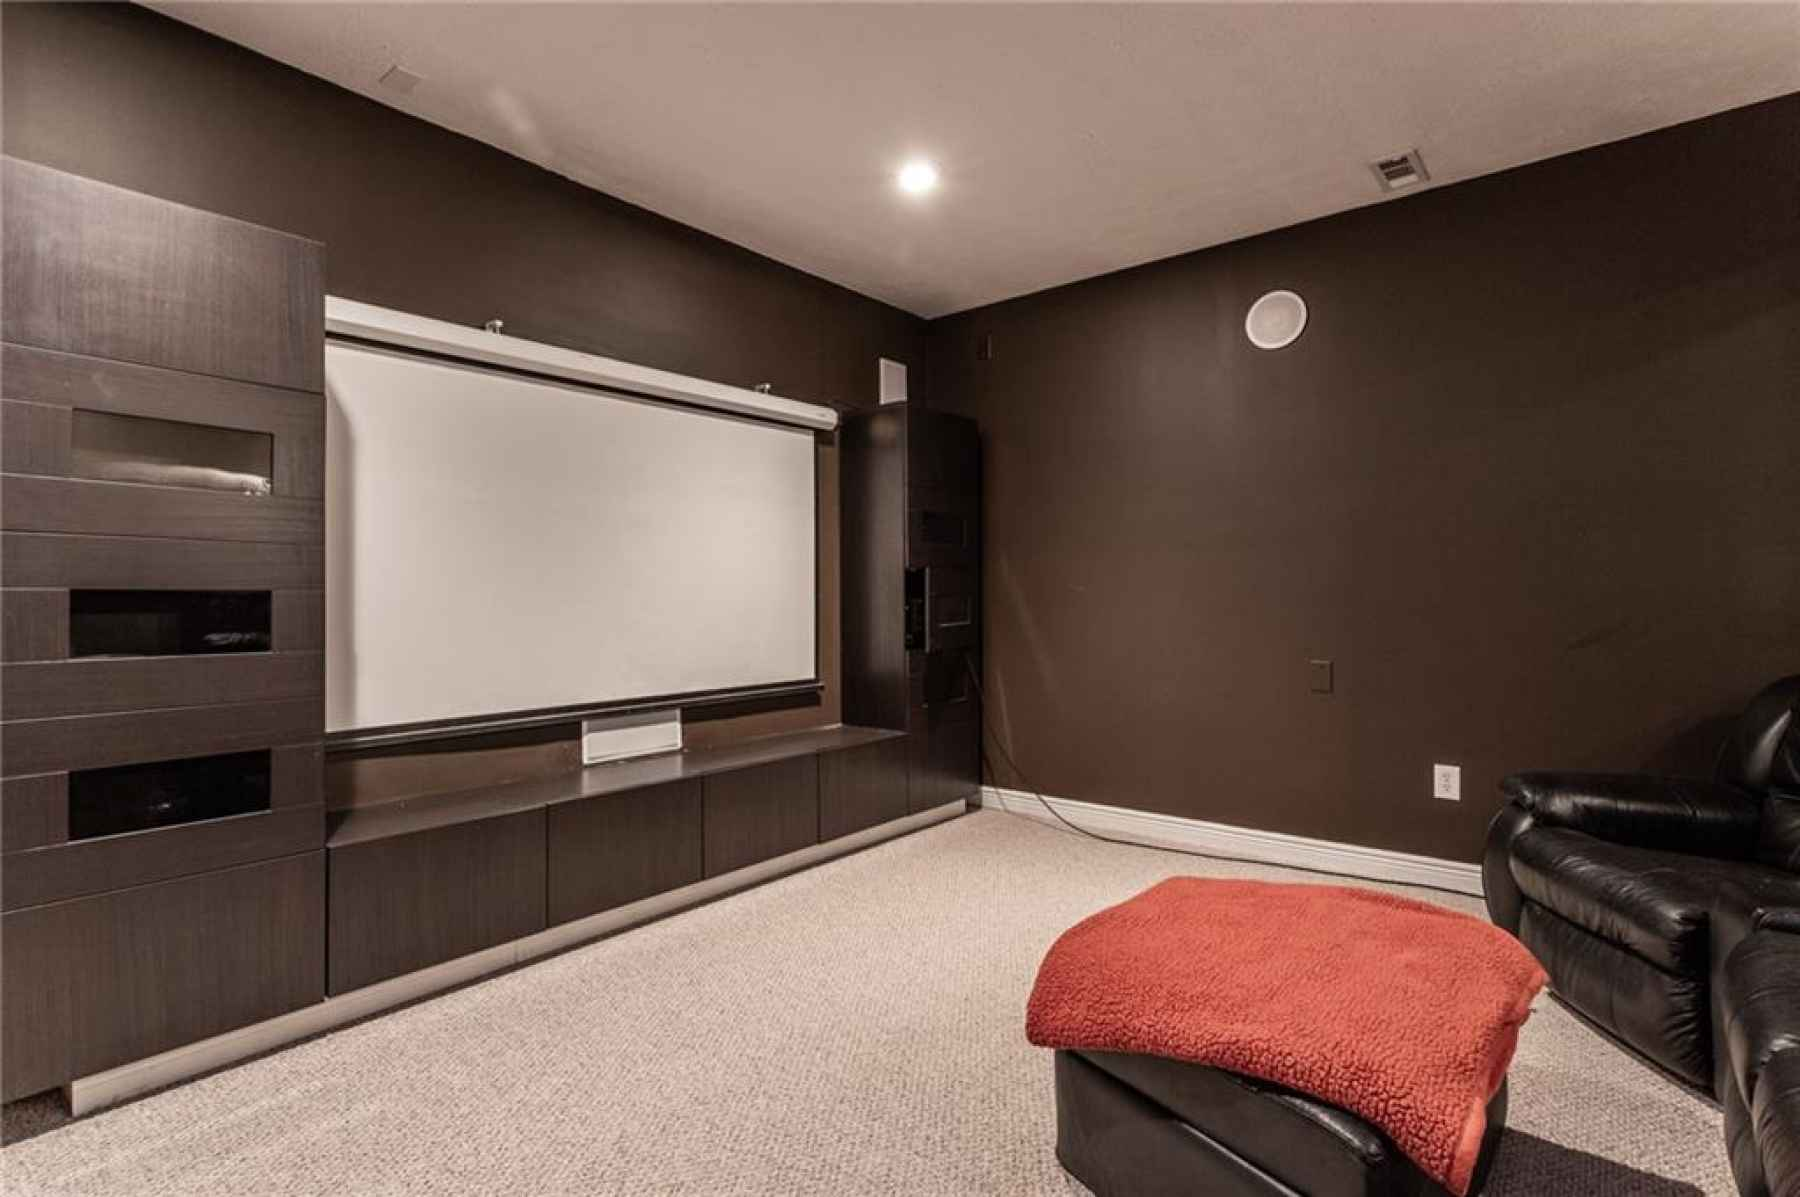 Basement theater room with built-in surround sound.